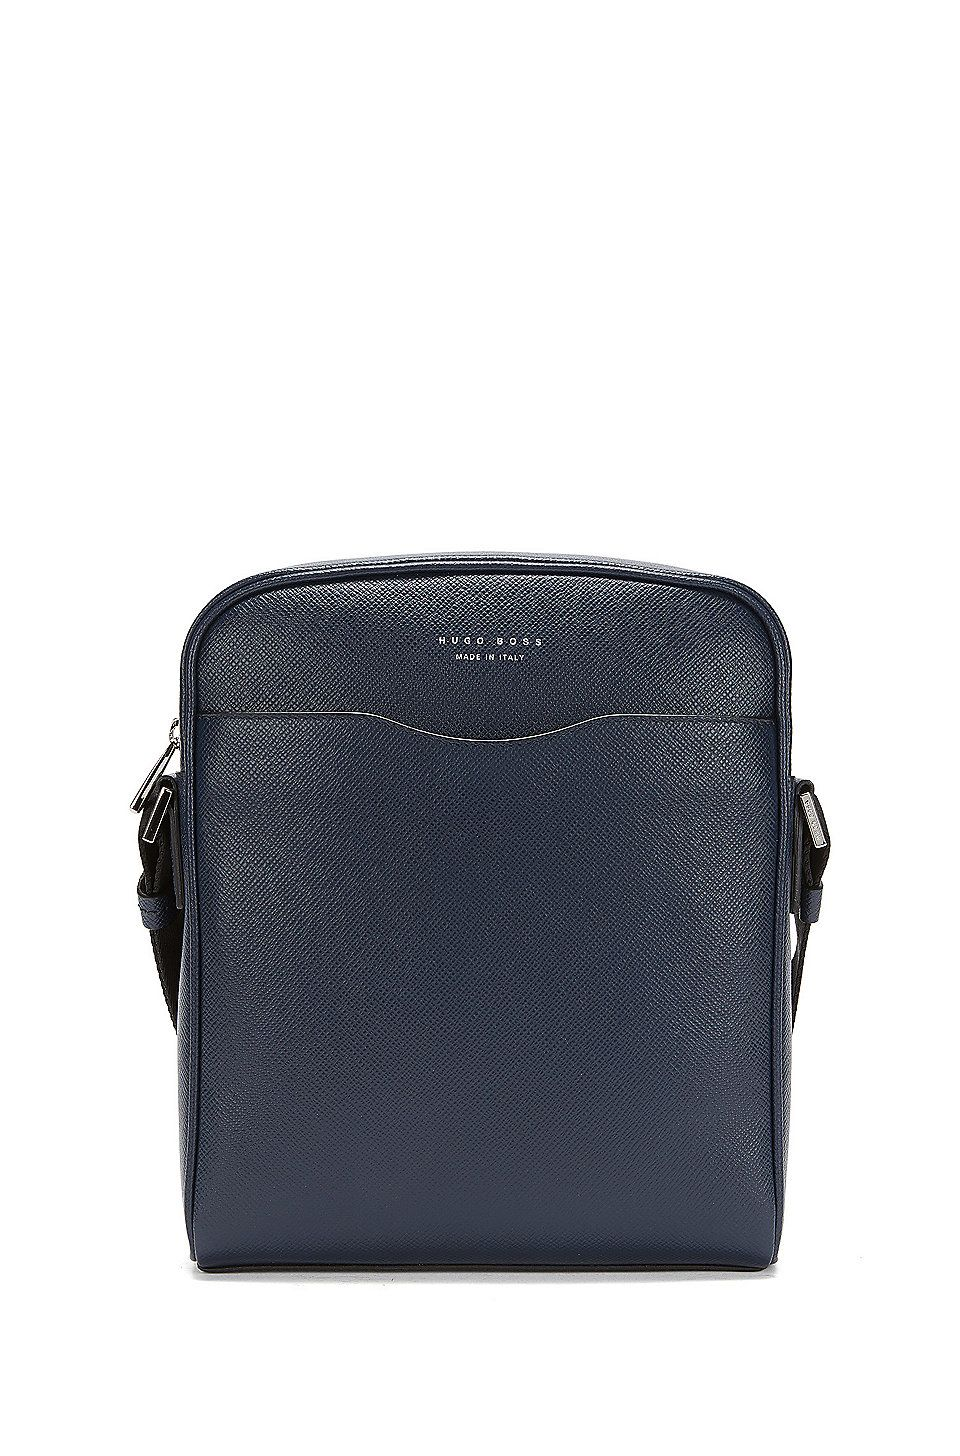 Hugo Boss Signature Collection Reporter Bag In Palmellato Leather Dark Blue Bags From